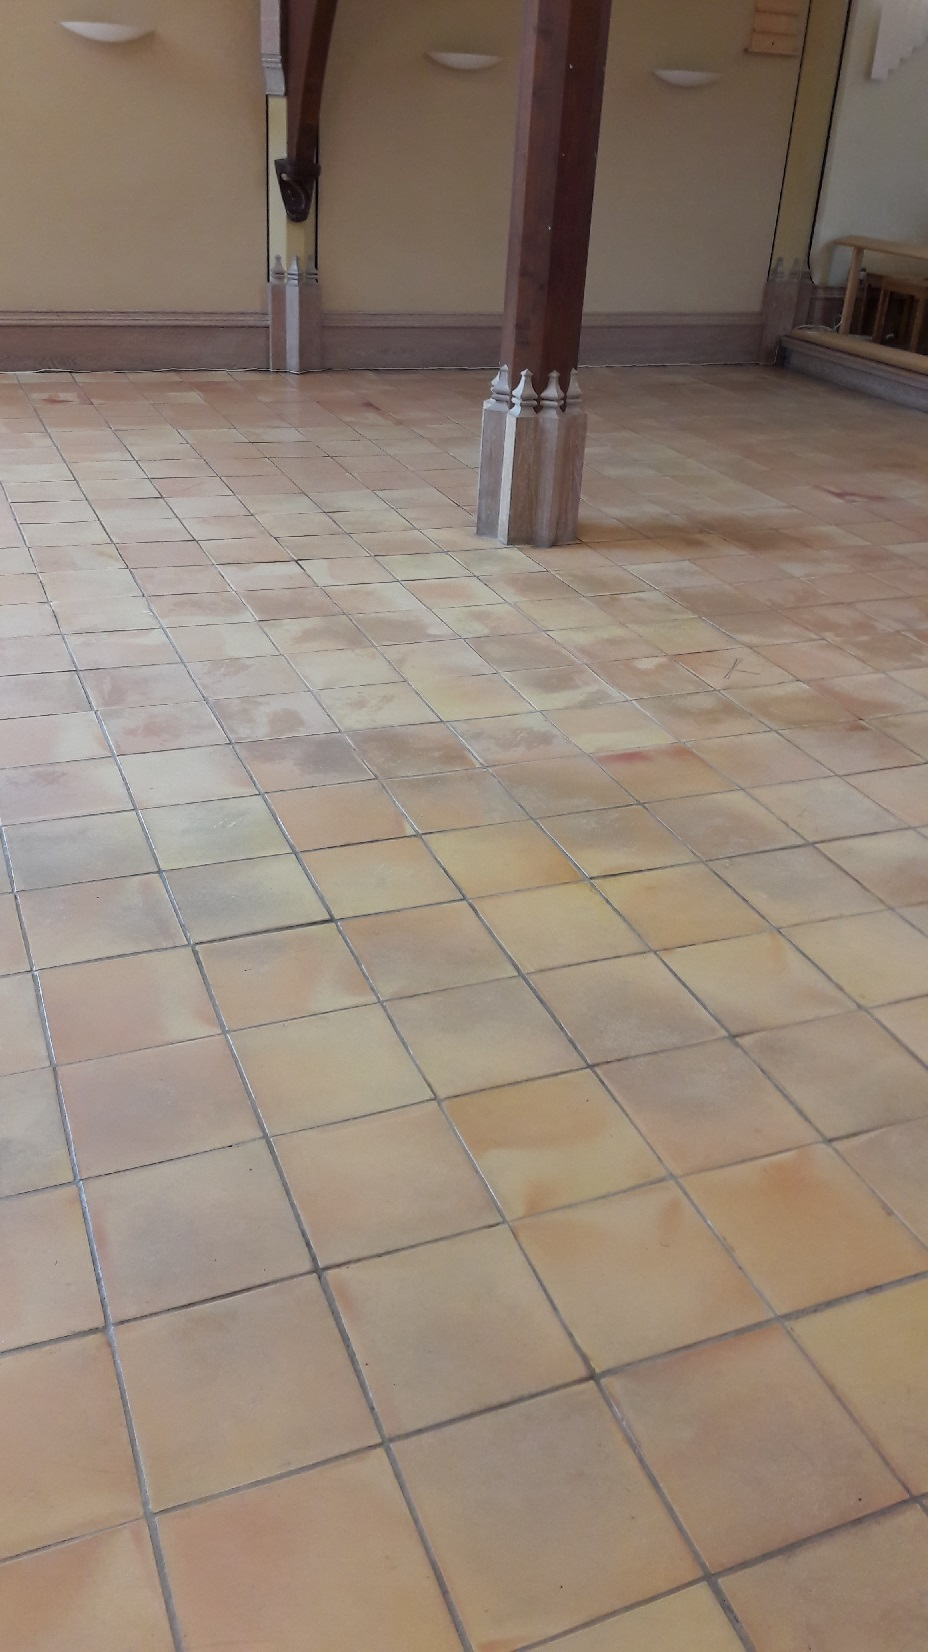 Terracotta Tiled Church Floor Renovated In Eaton Village Tile Cleaners Tile Cleaning